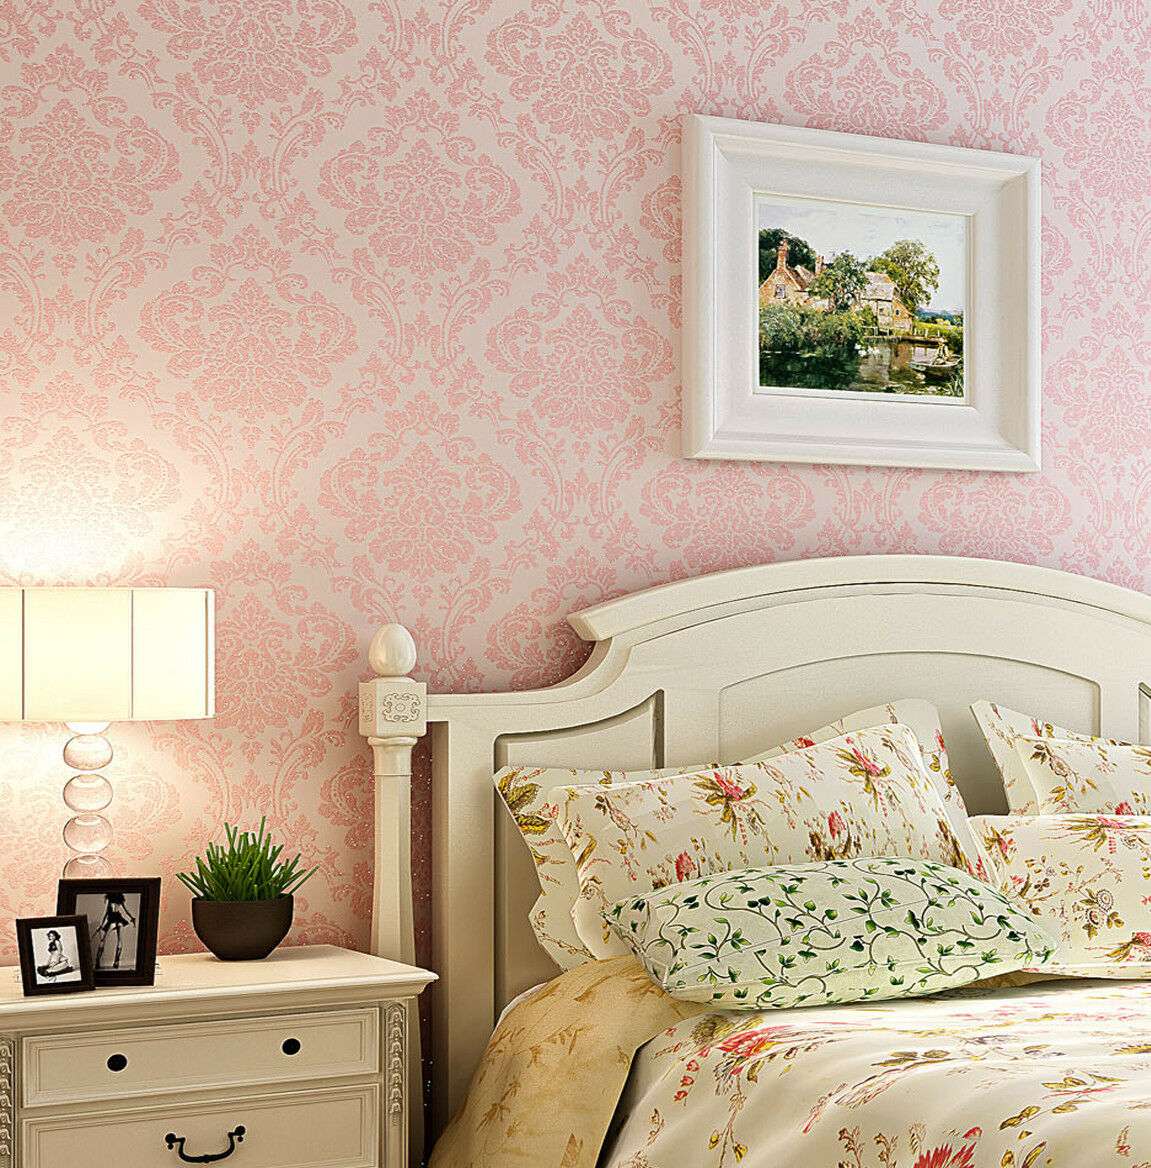 Vintage Bedroom: Luxury Victorian Vintage Light Pink Damask Nonwoven